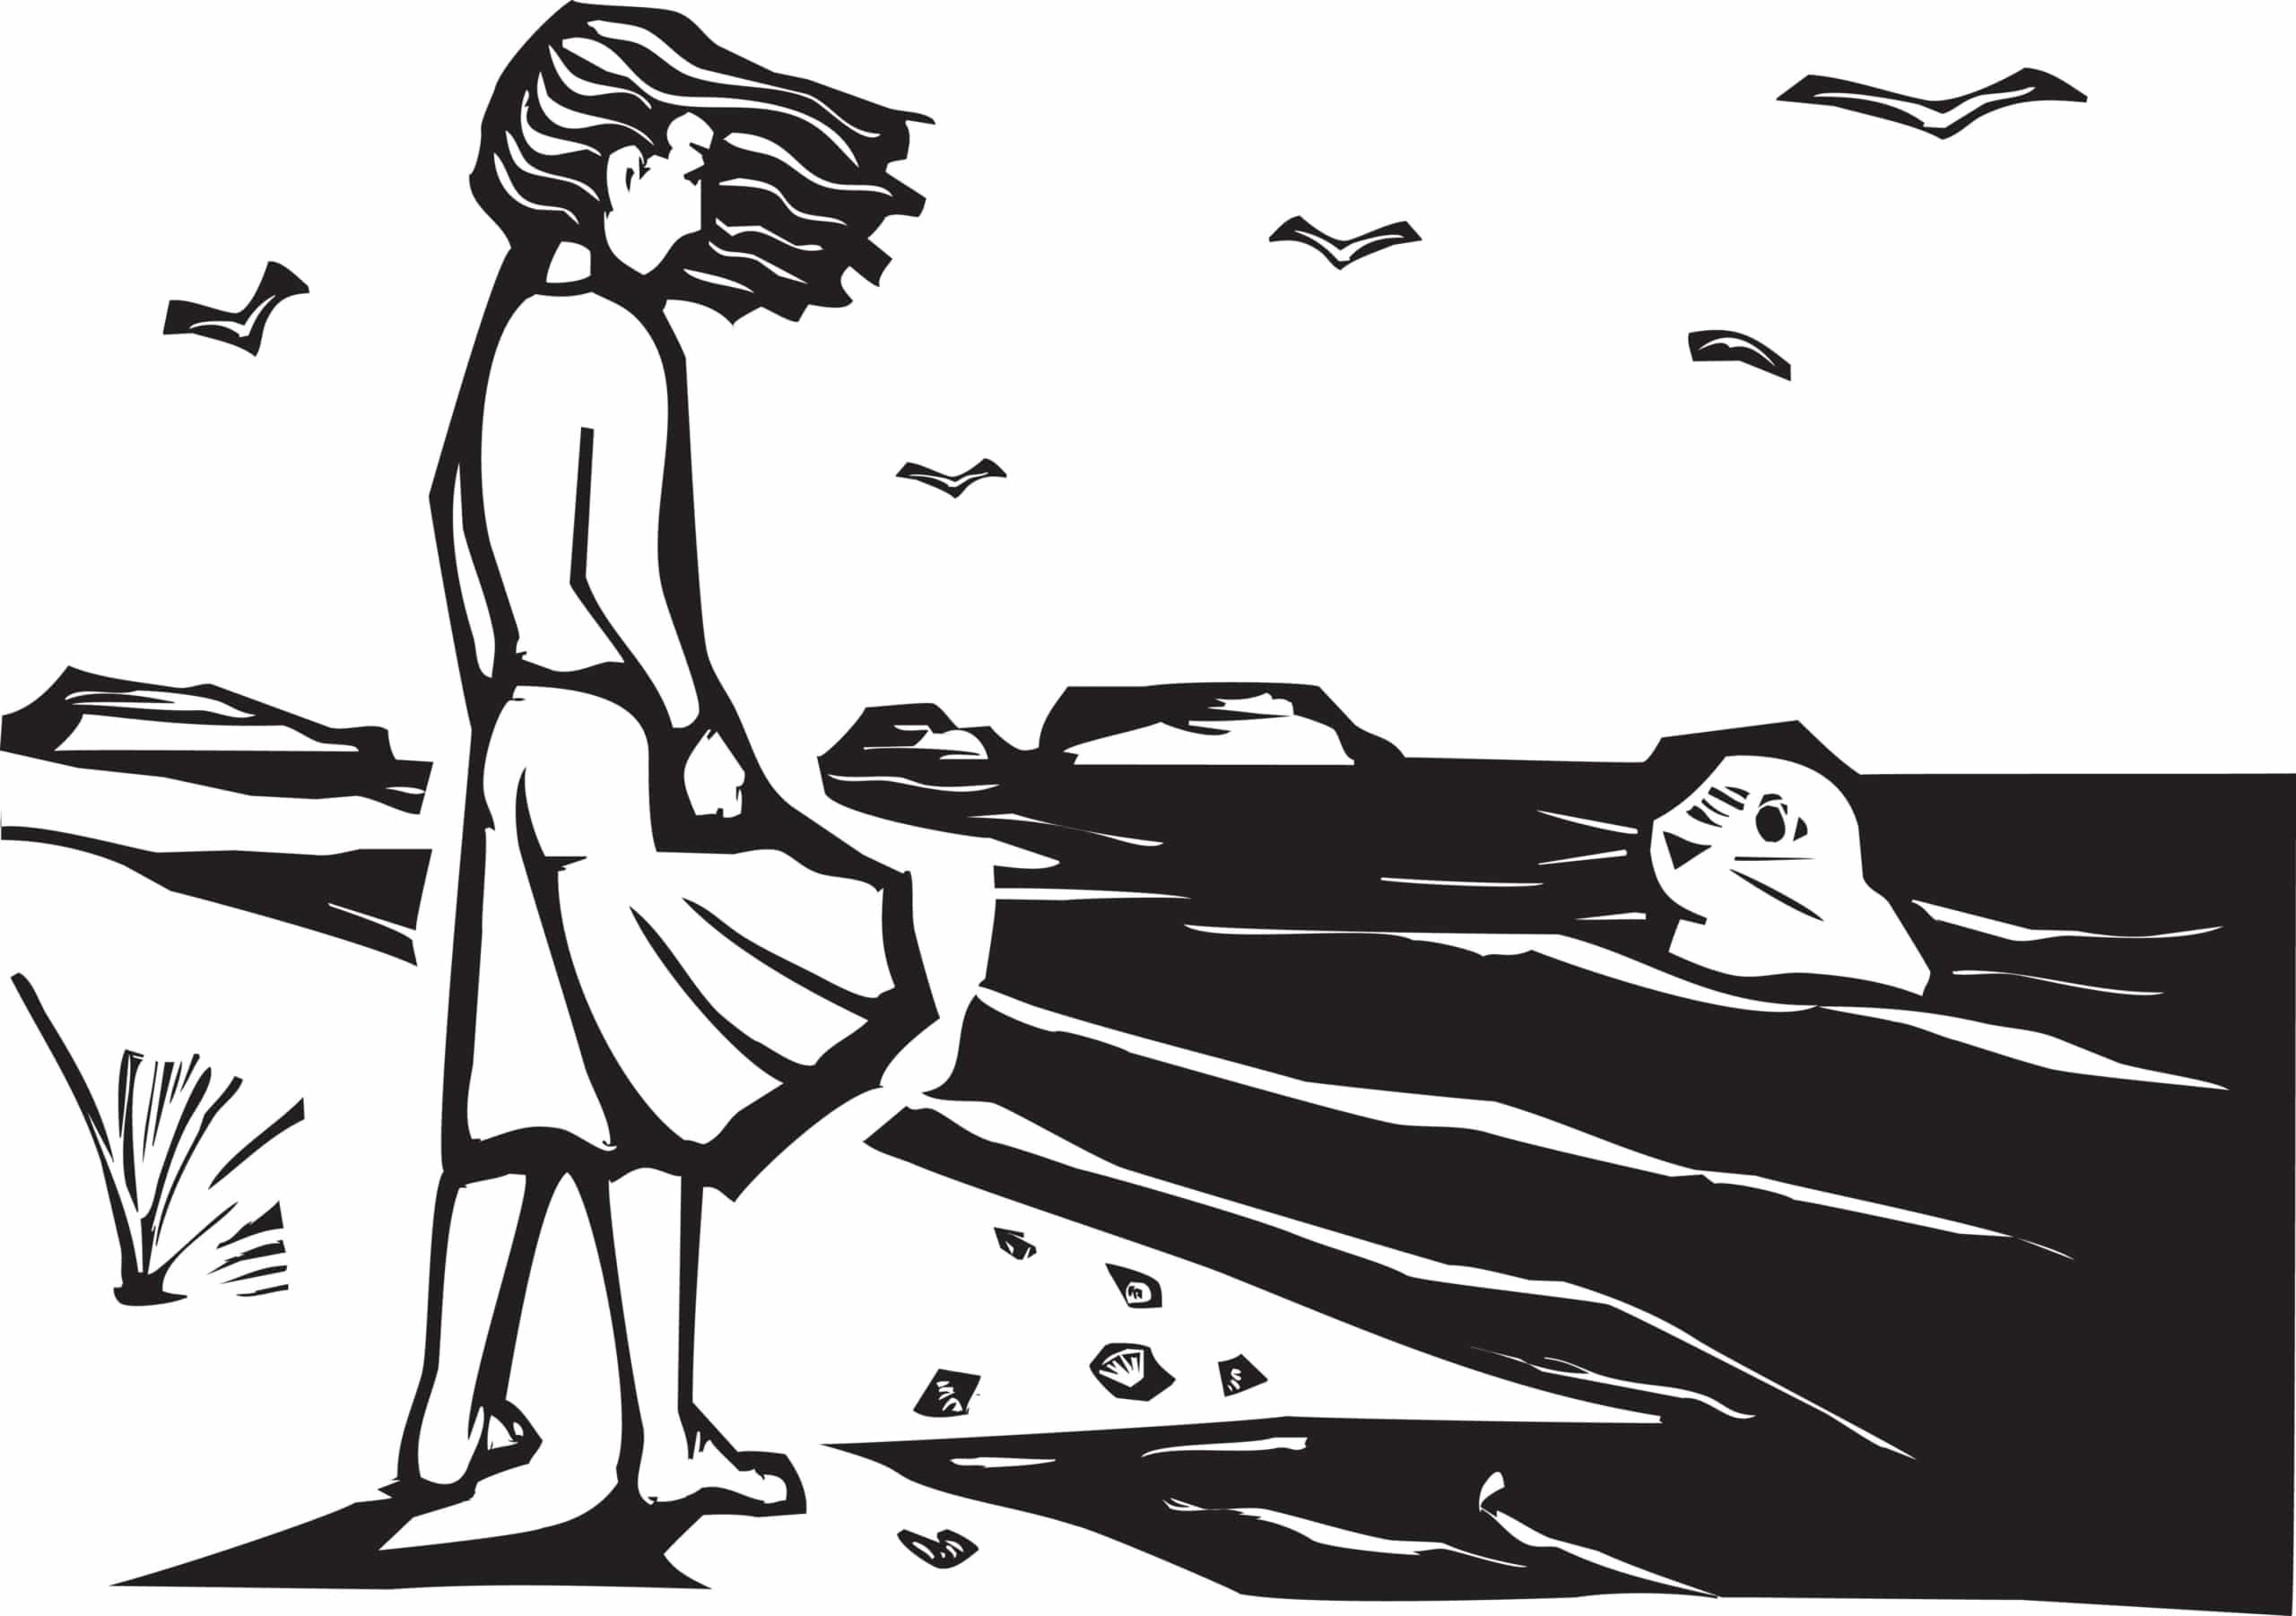 A drawing of a Scottish Selkie, or seal person